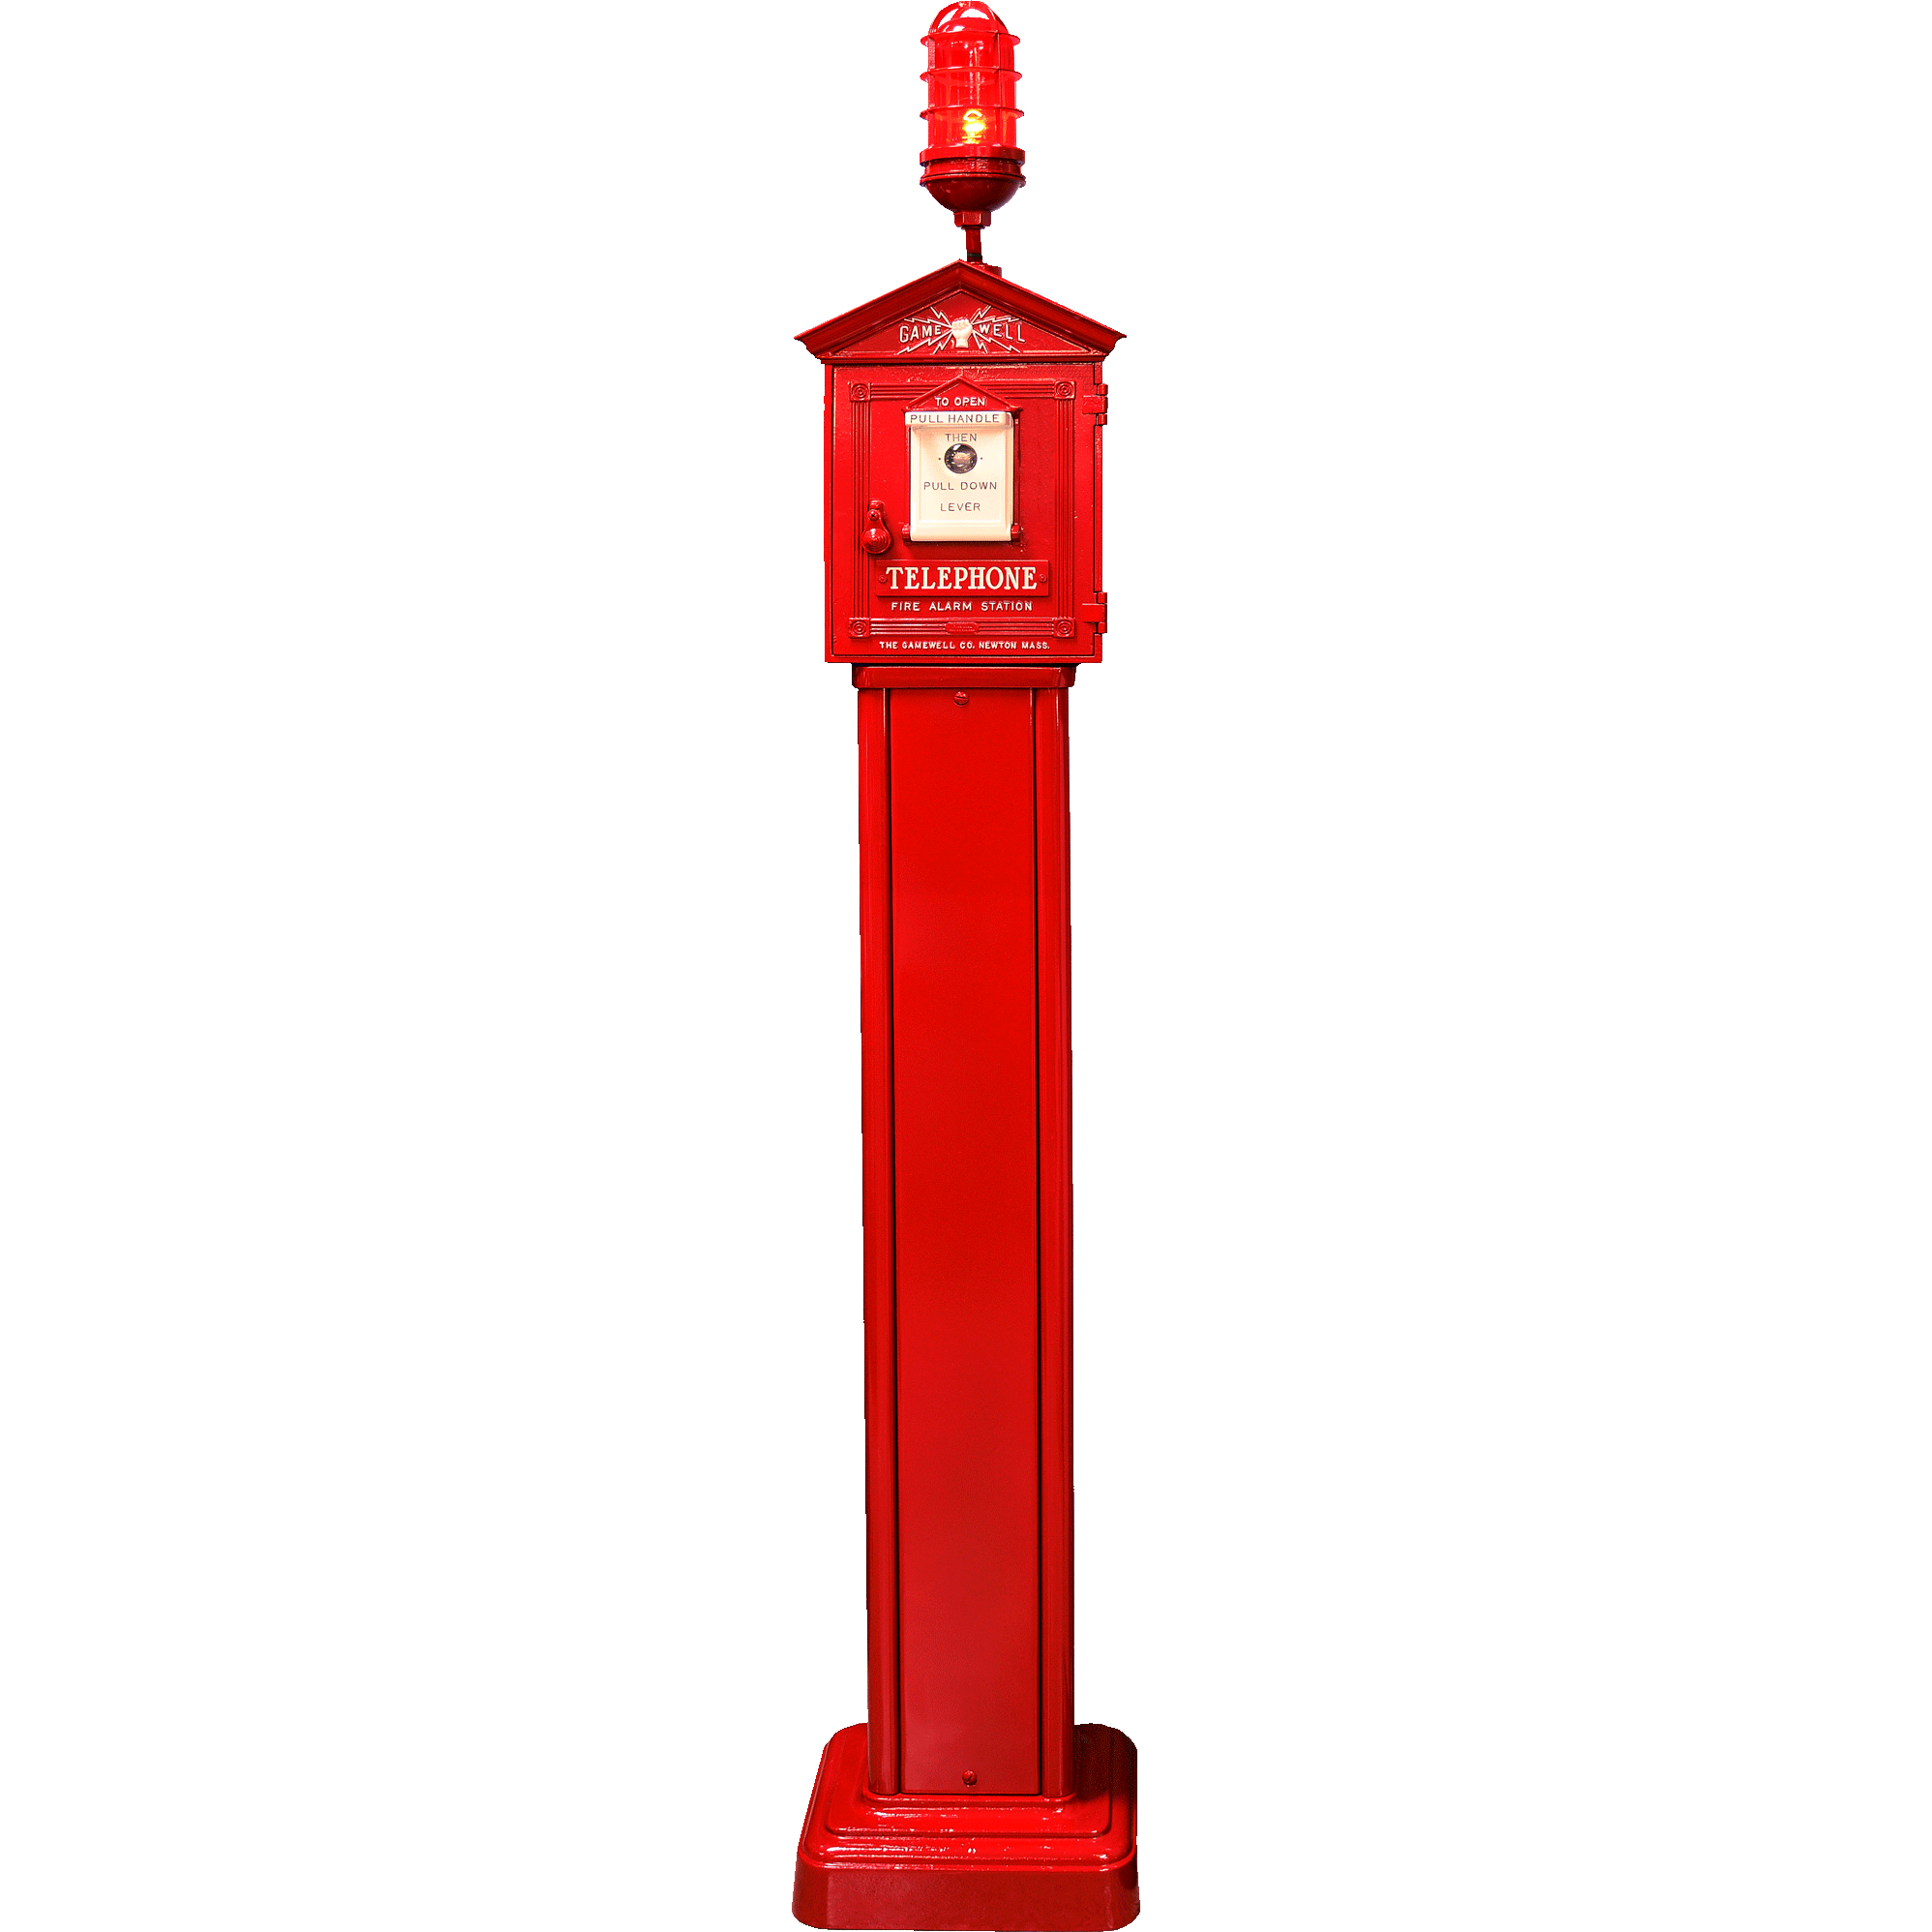 Gamewell Fire Alarm Call Box on Pedestal